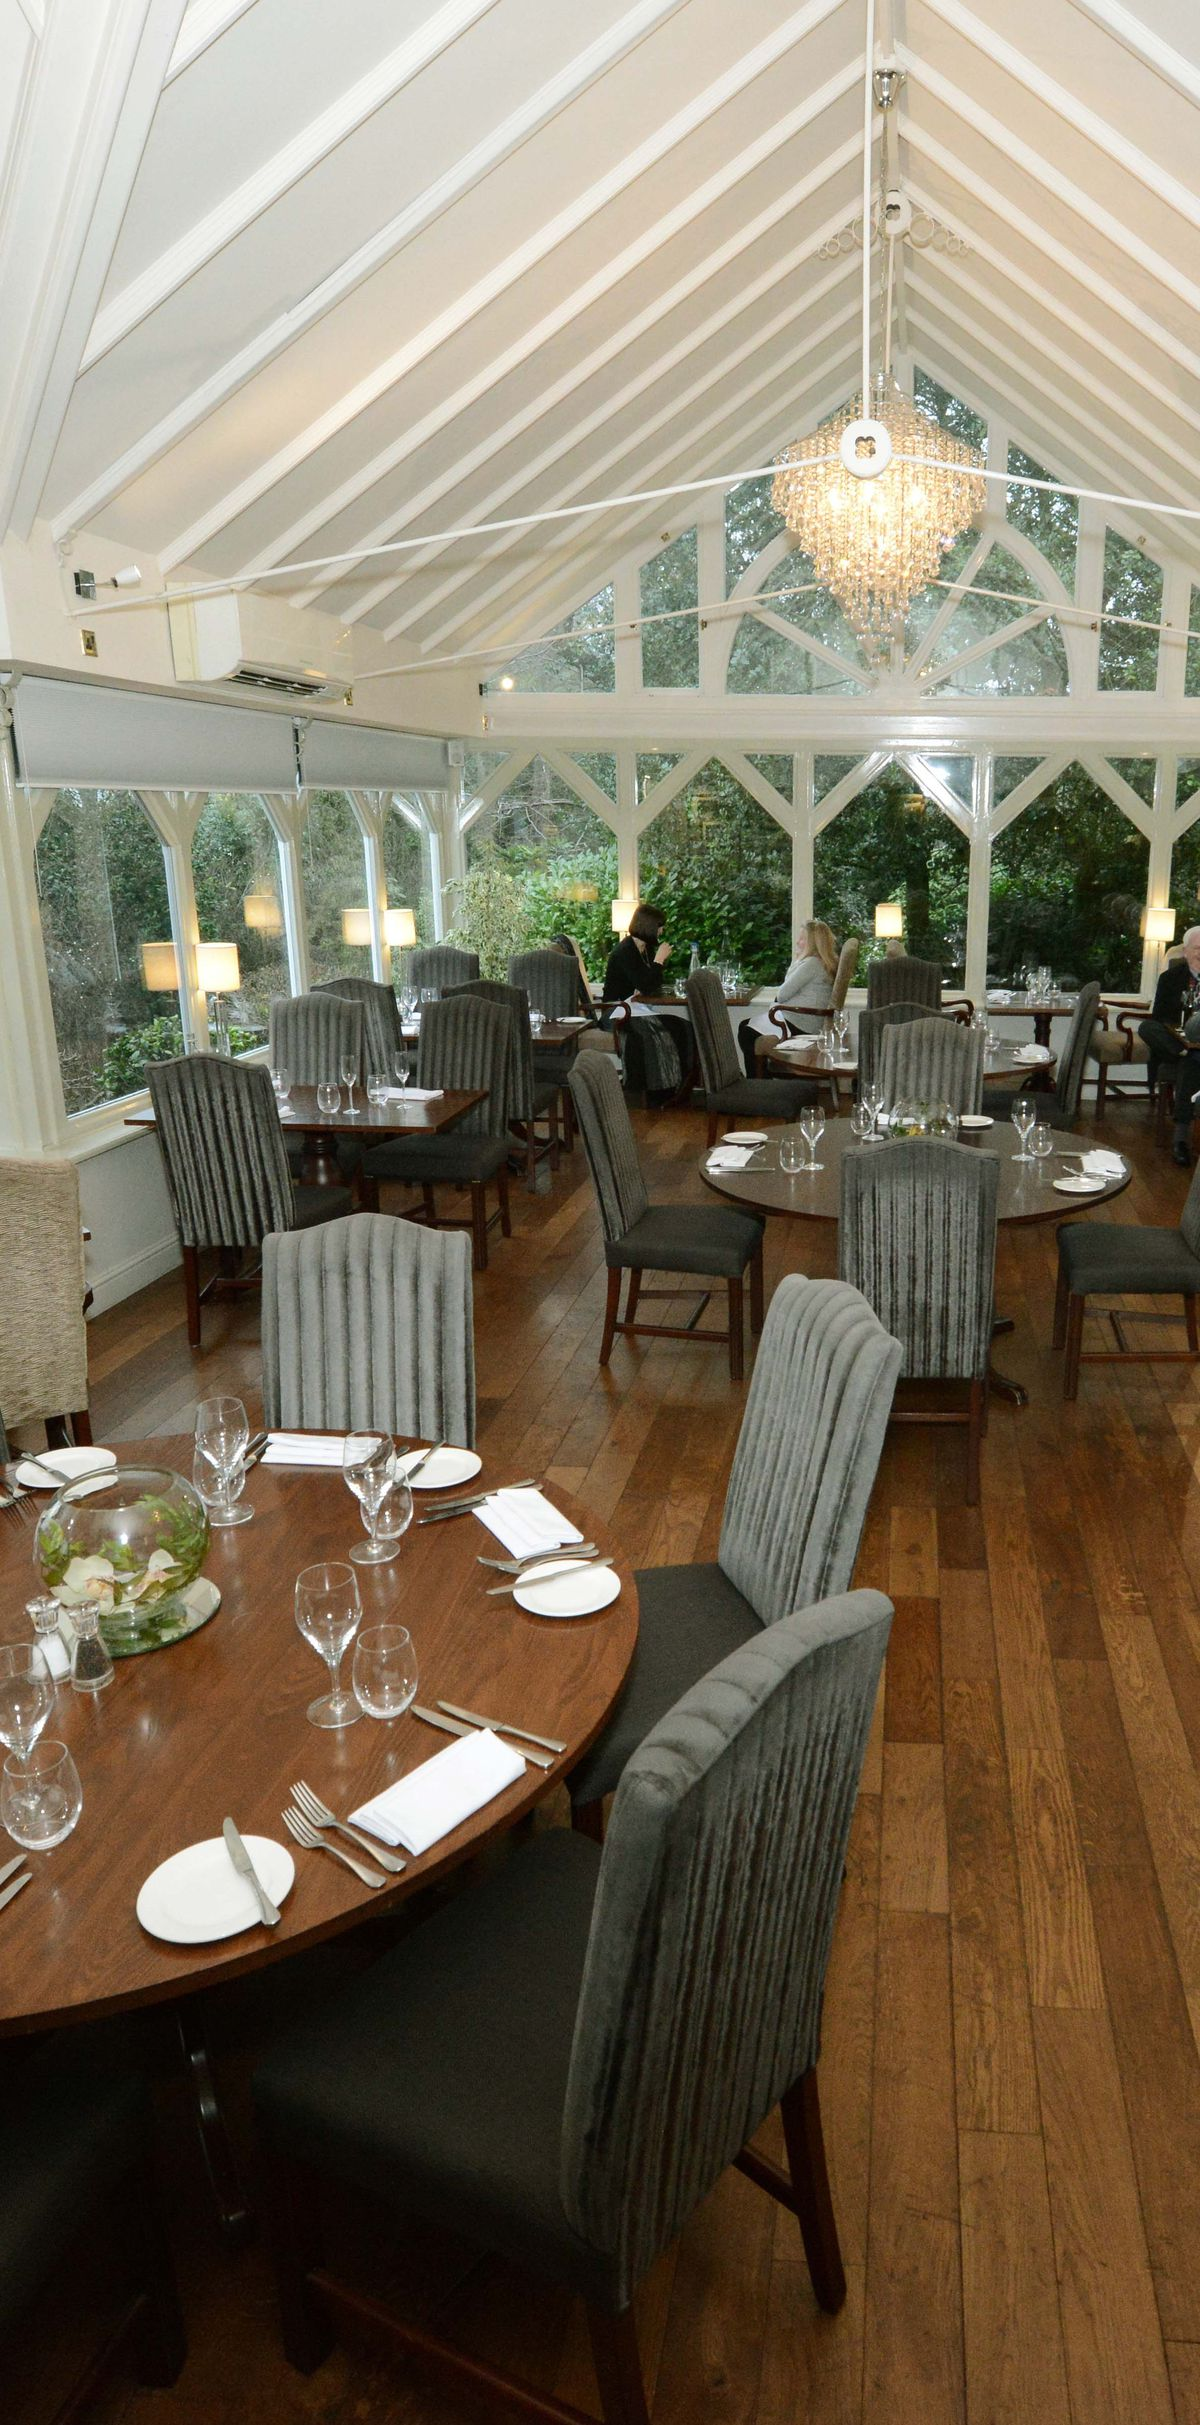 The dining room at The Moat House